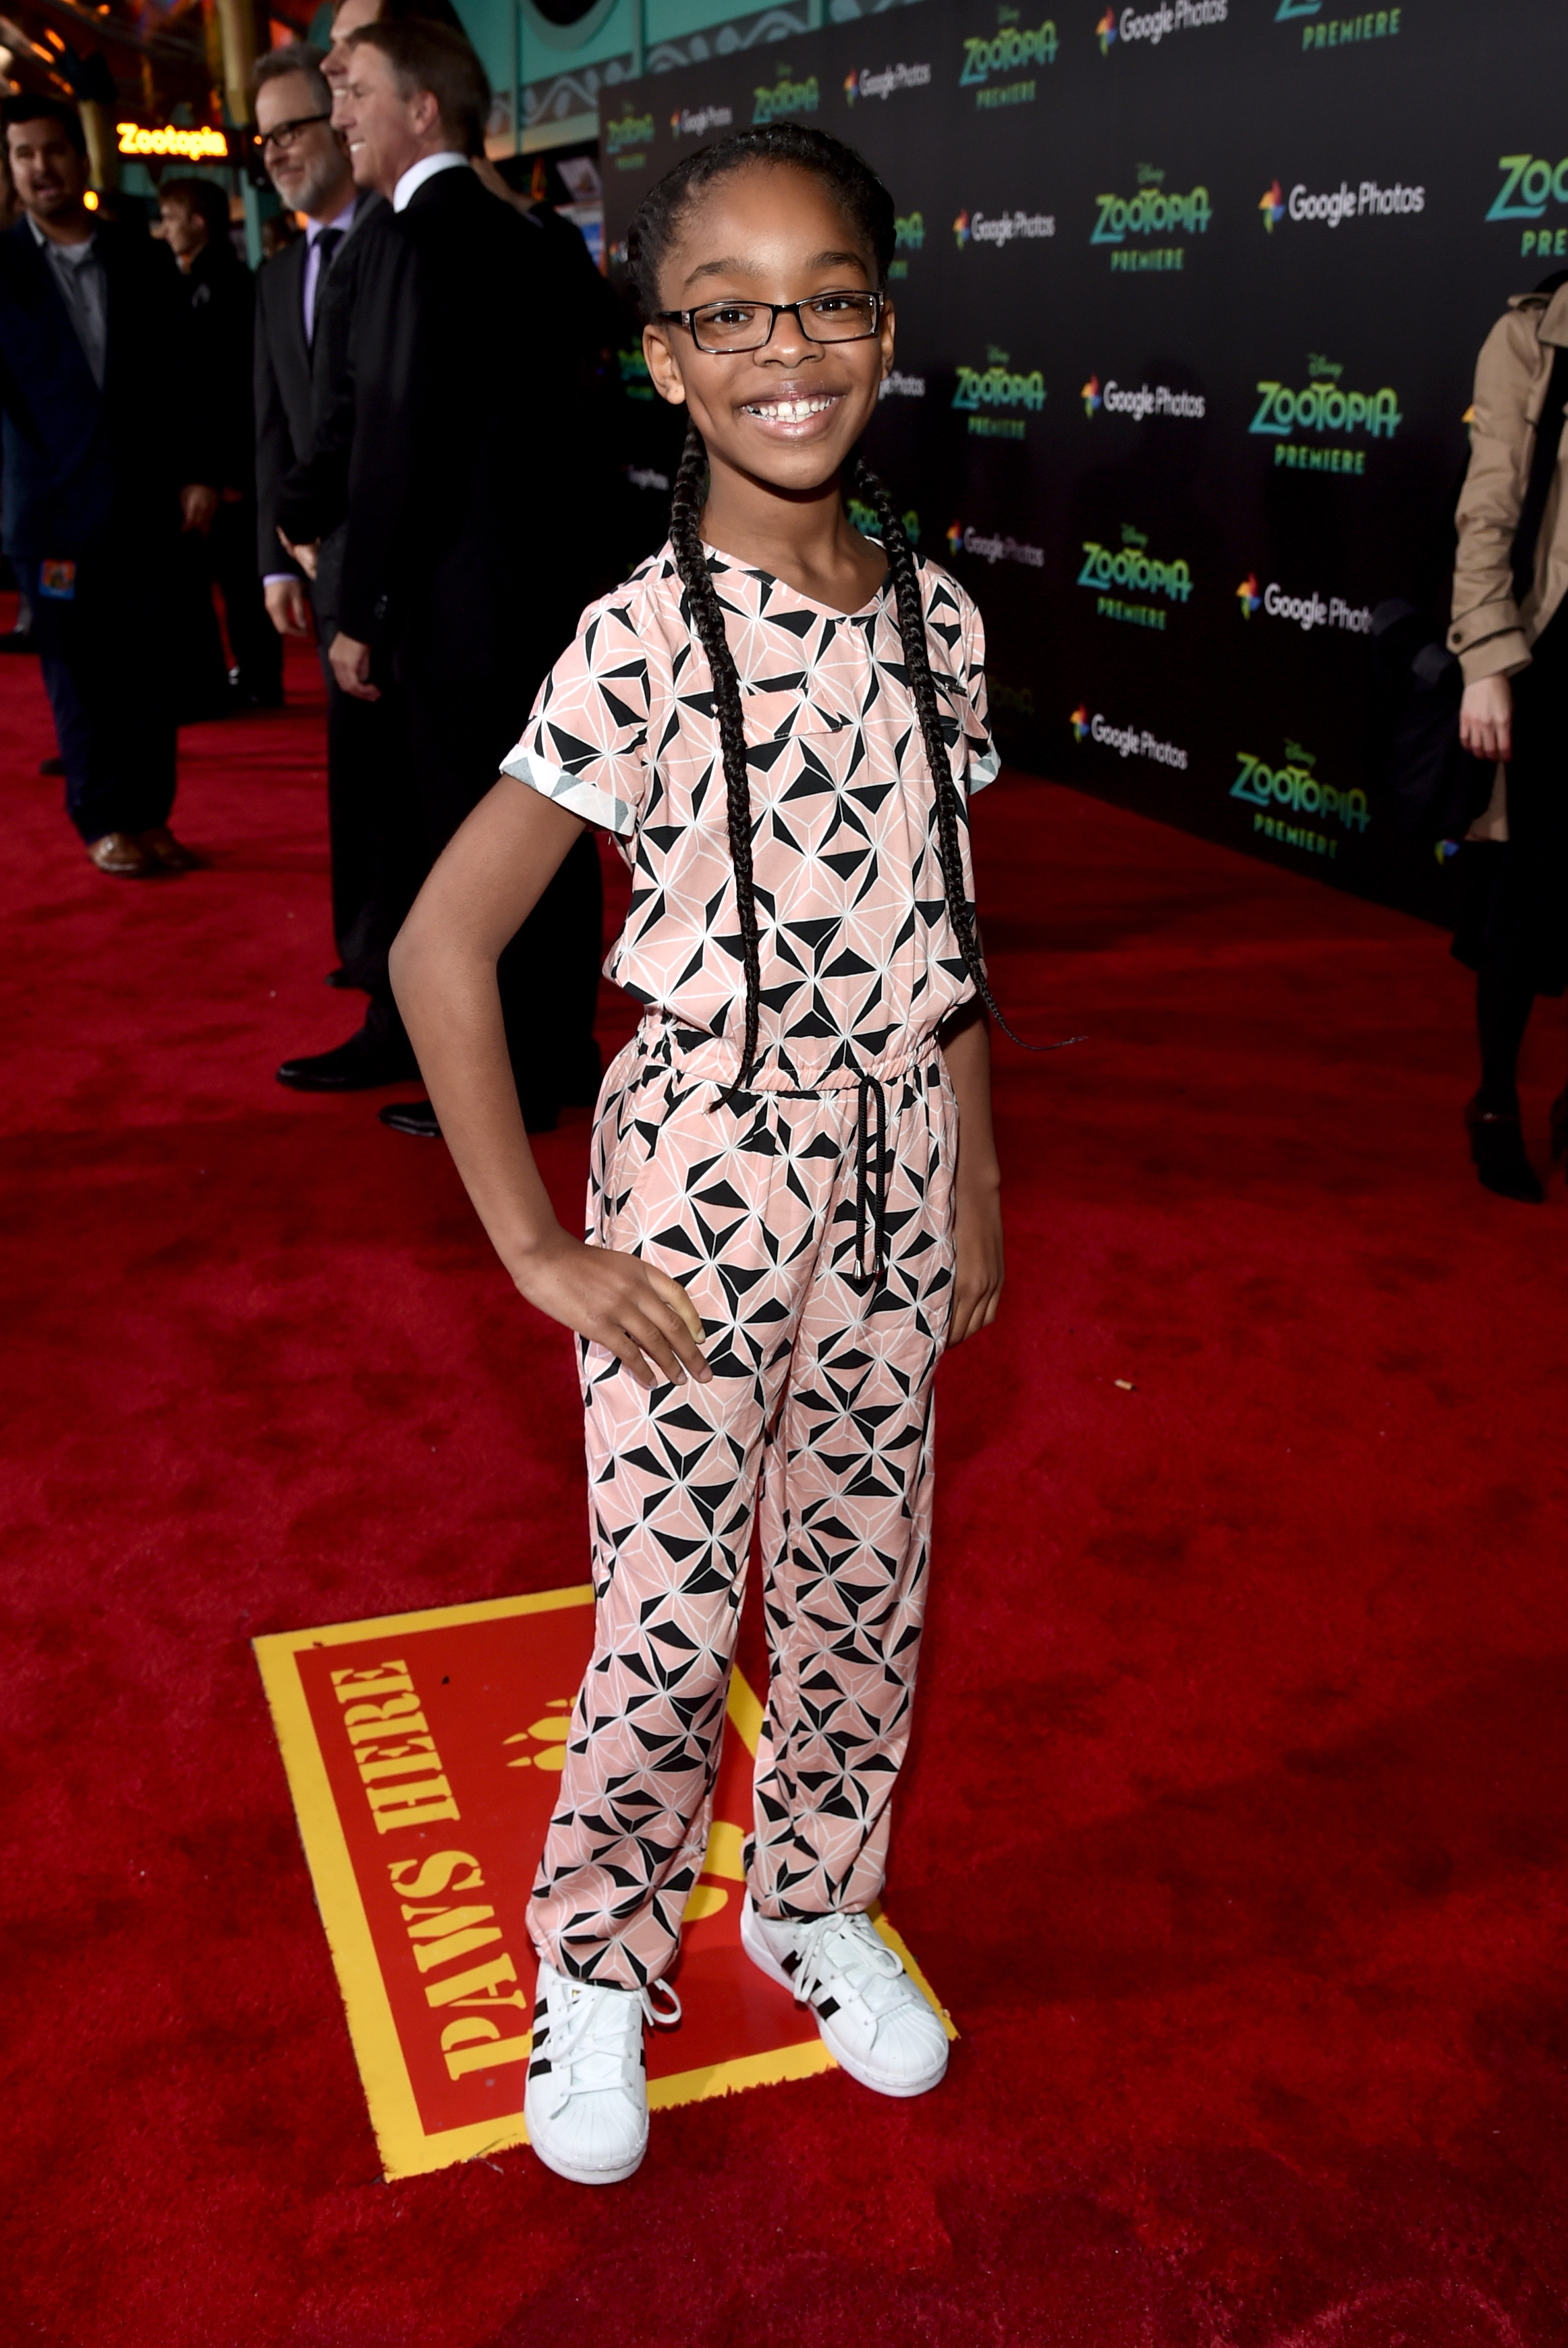 Actress Marsai Martin attends the Los Angeles premiere of Walt Disney Animation Studios' 'Zootopia' (Photo by Alberto E. Rodriguez/Getty Images for Disney)